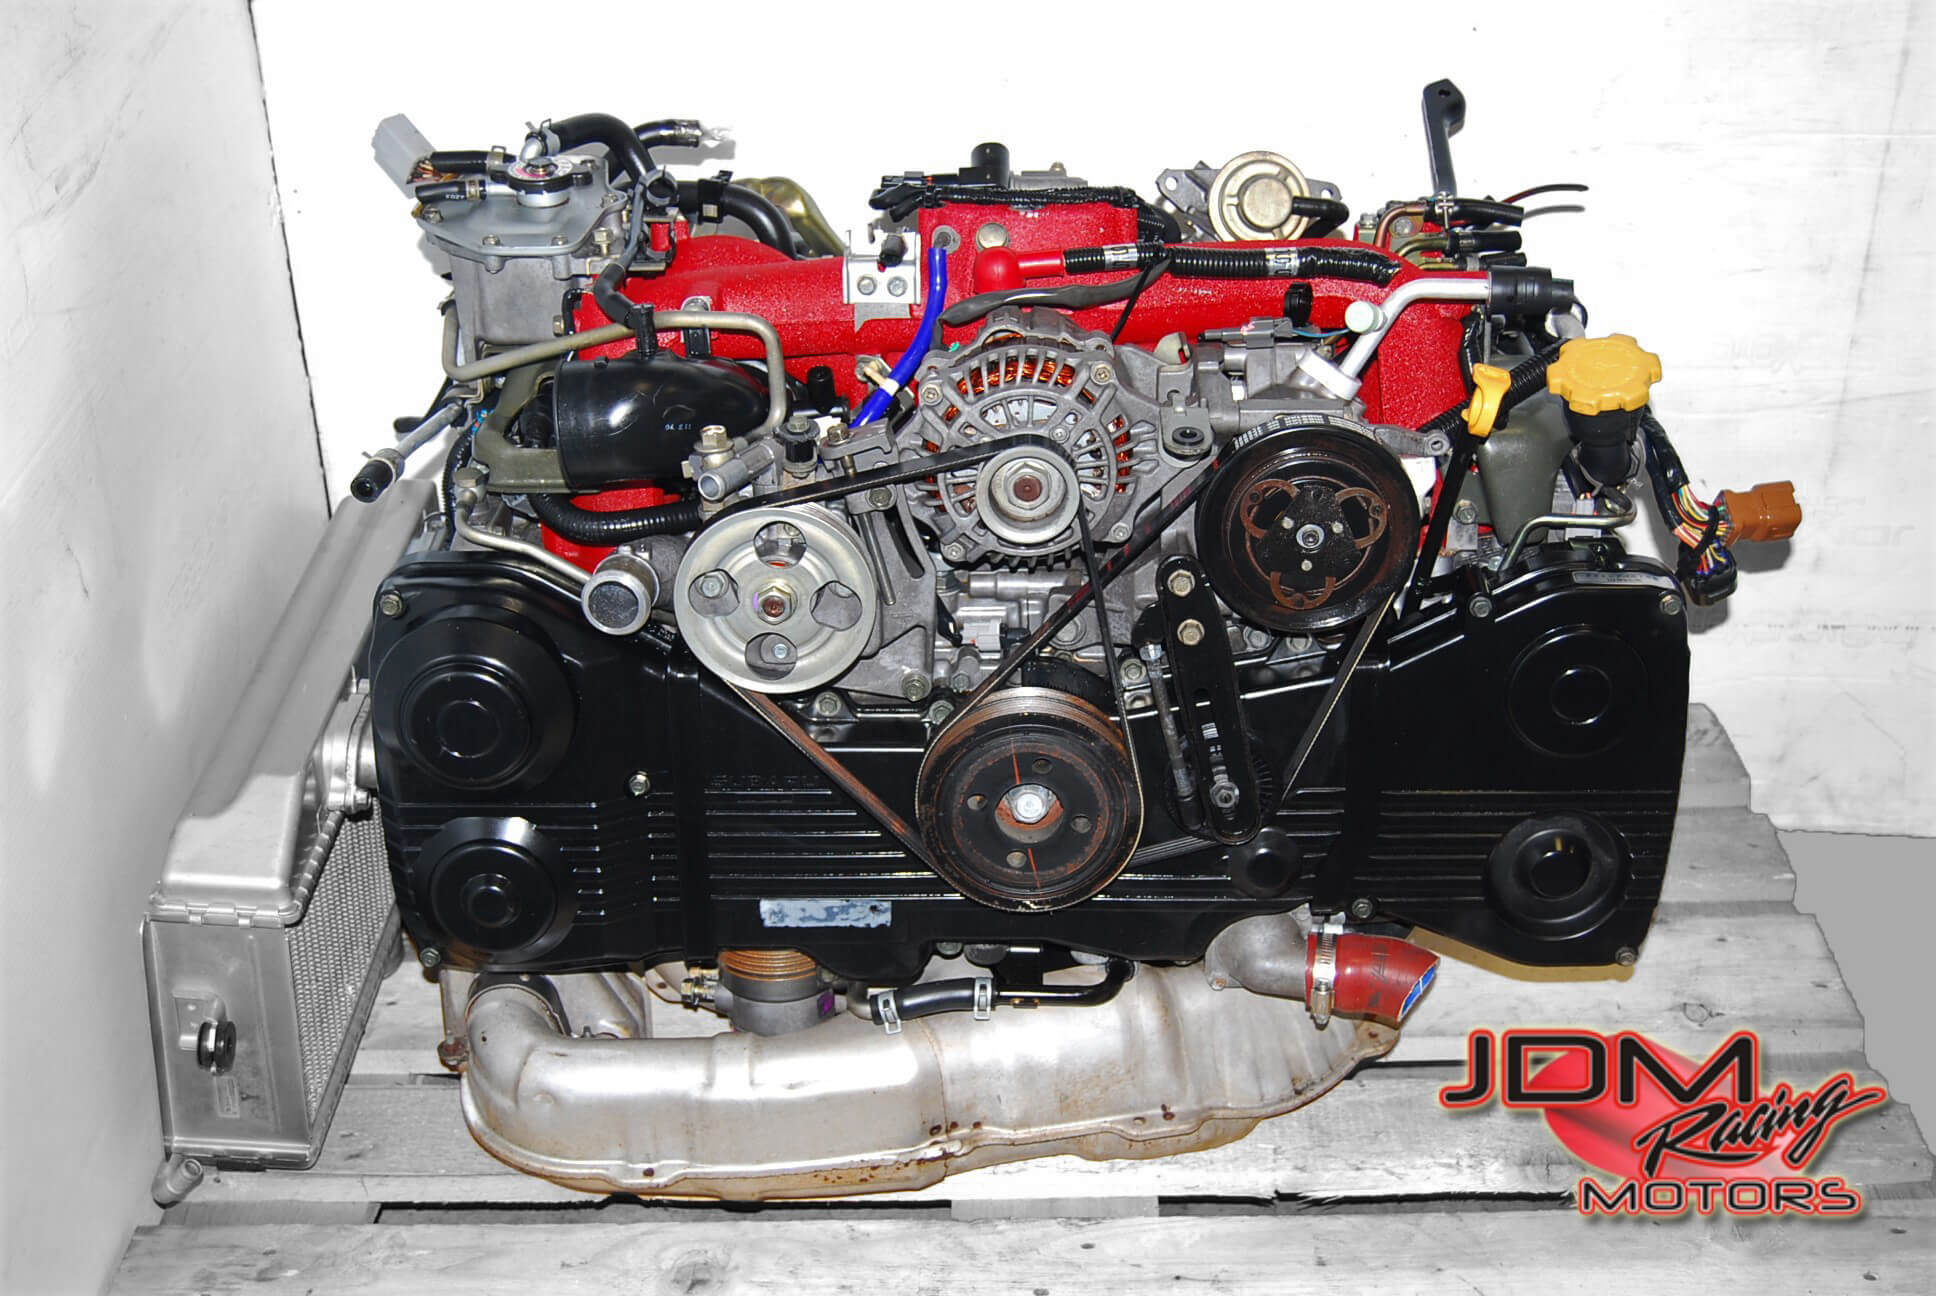 subaru jdm engines \u0026 parts jdm racing motorsSubaru 22 Liter Engine Diagram #13